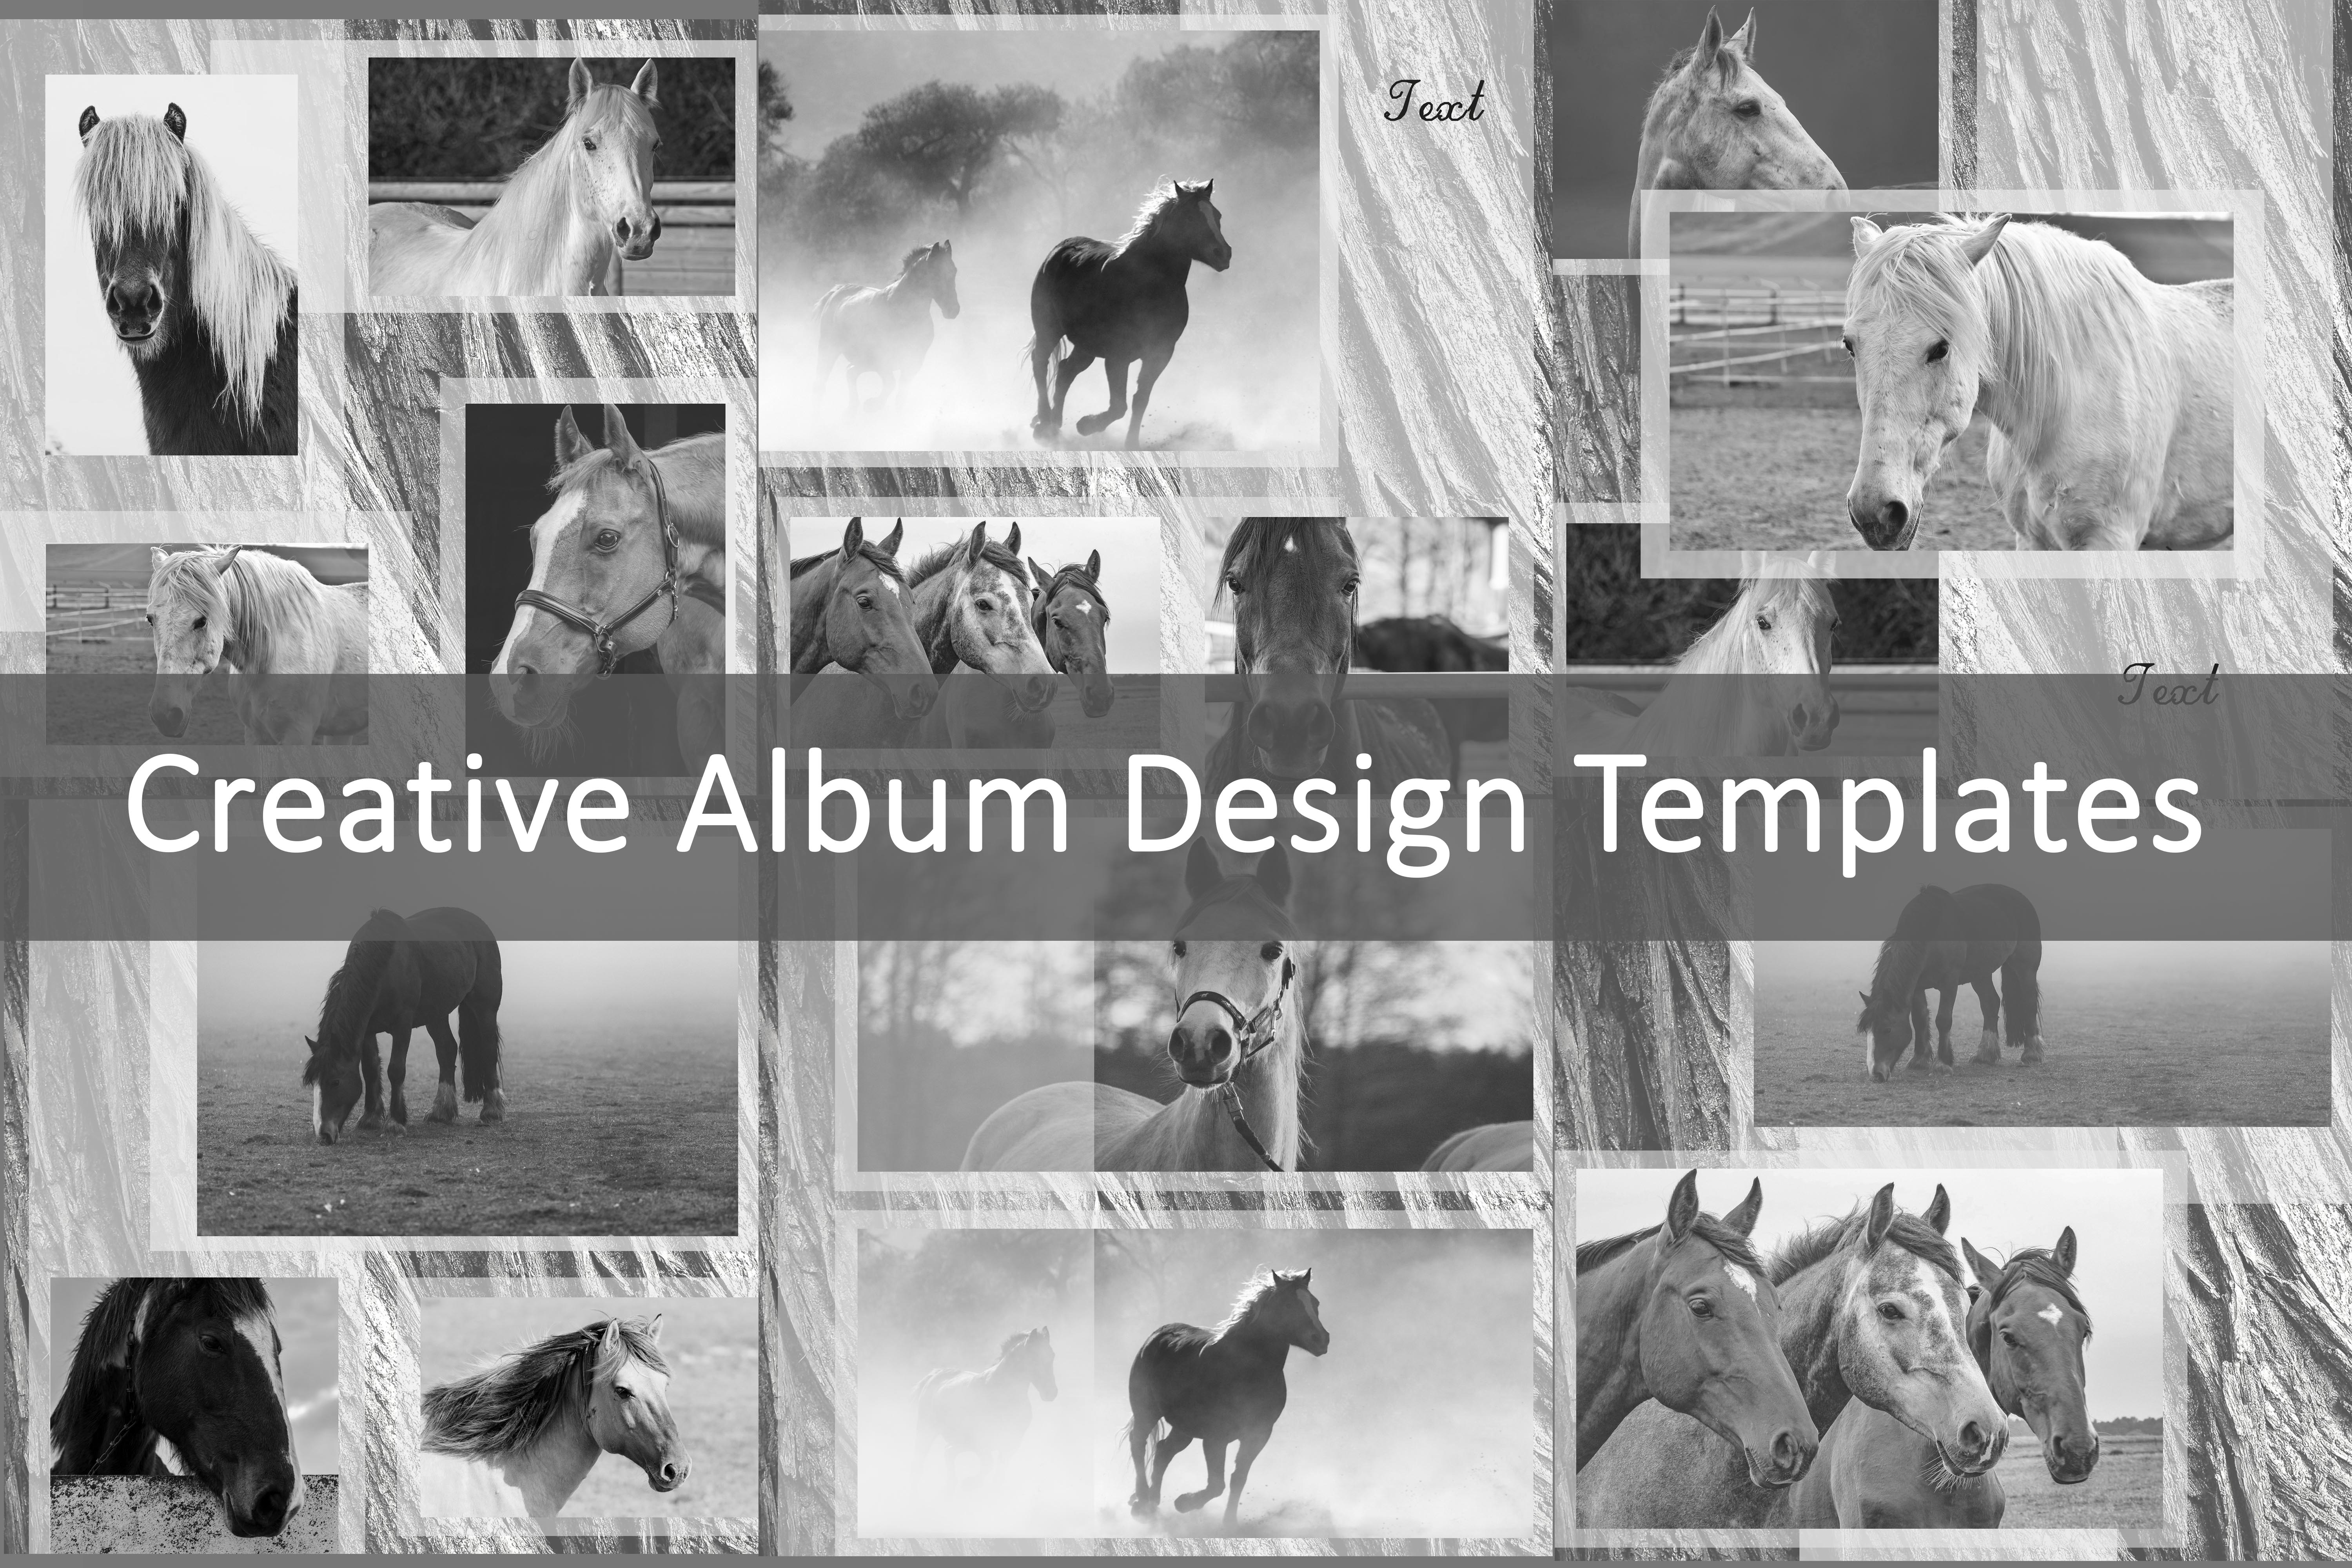 photo-album-design-templates-psd-free-download-photo-editing-sample